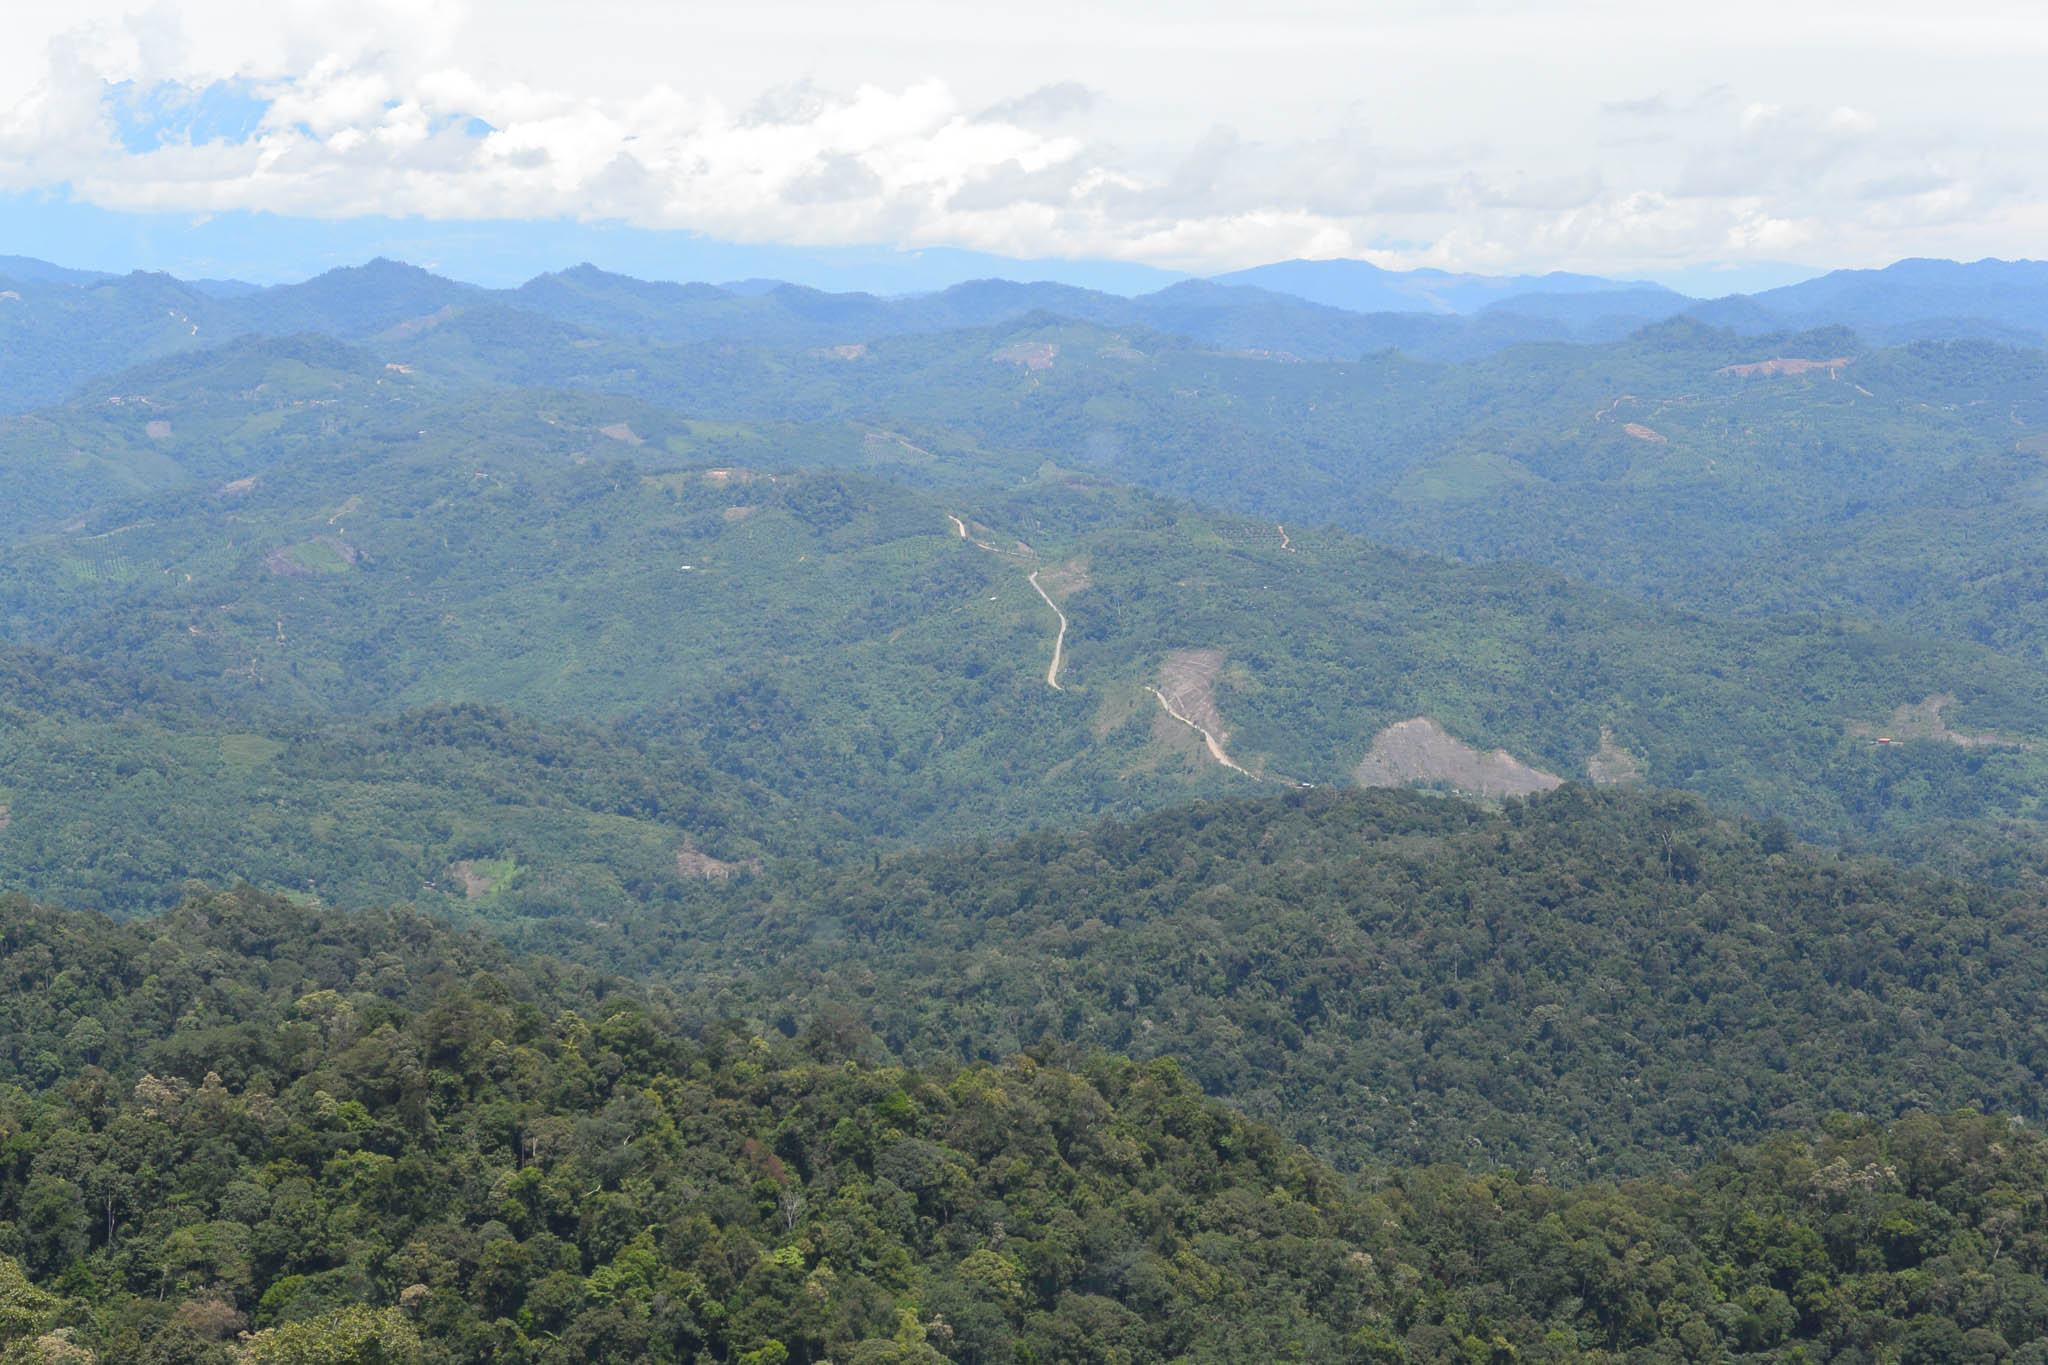 Conservation groups had been crafting an alternate future for FMU5, one that would save its forests from intensive logging. © WWF-Malaysia/STCP